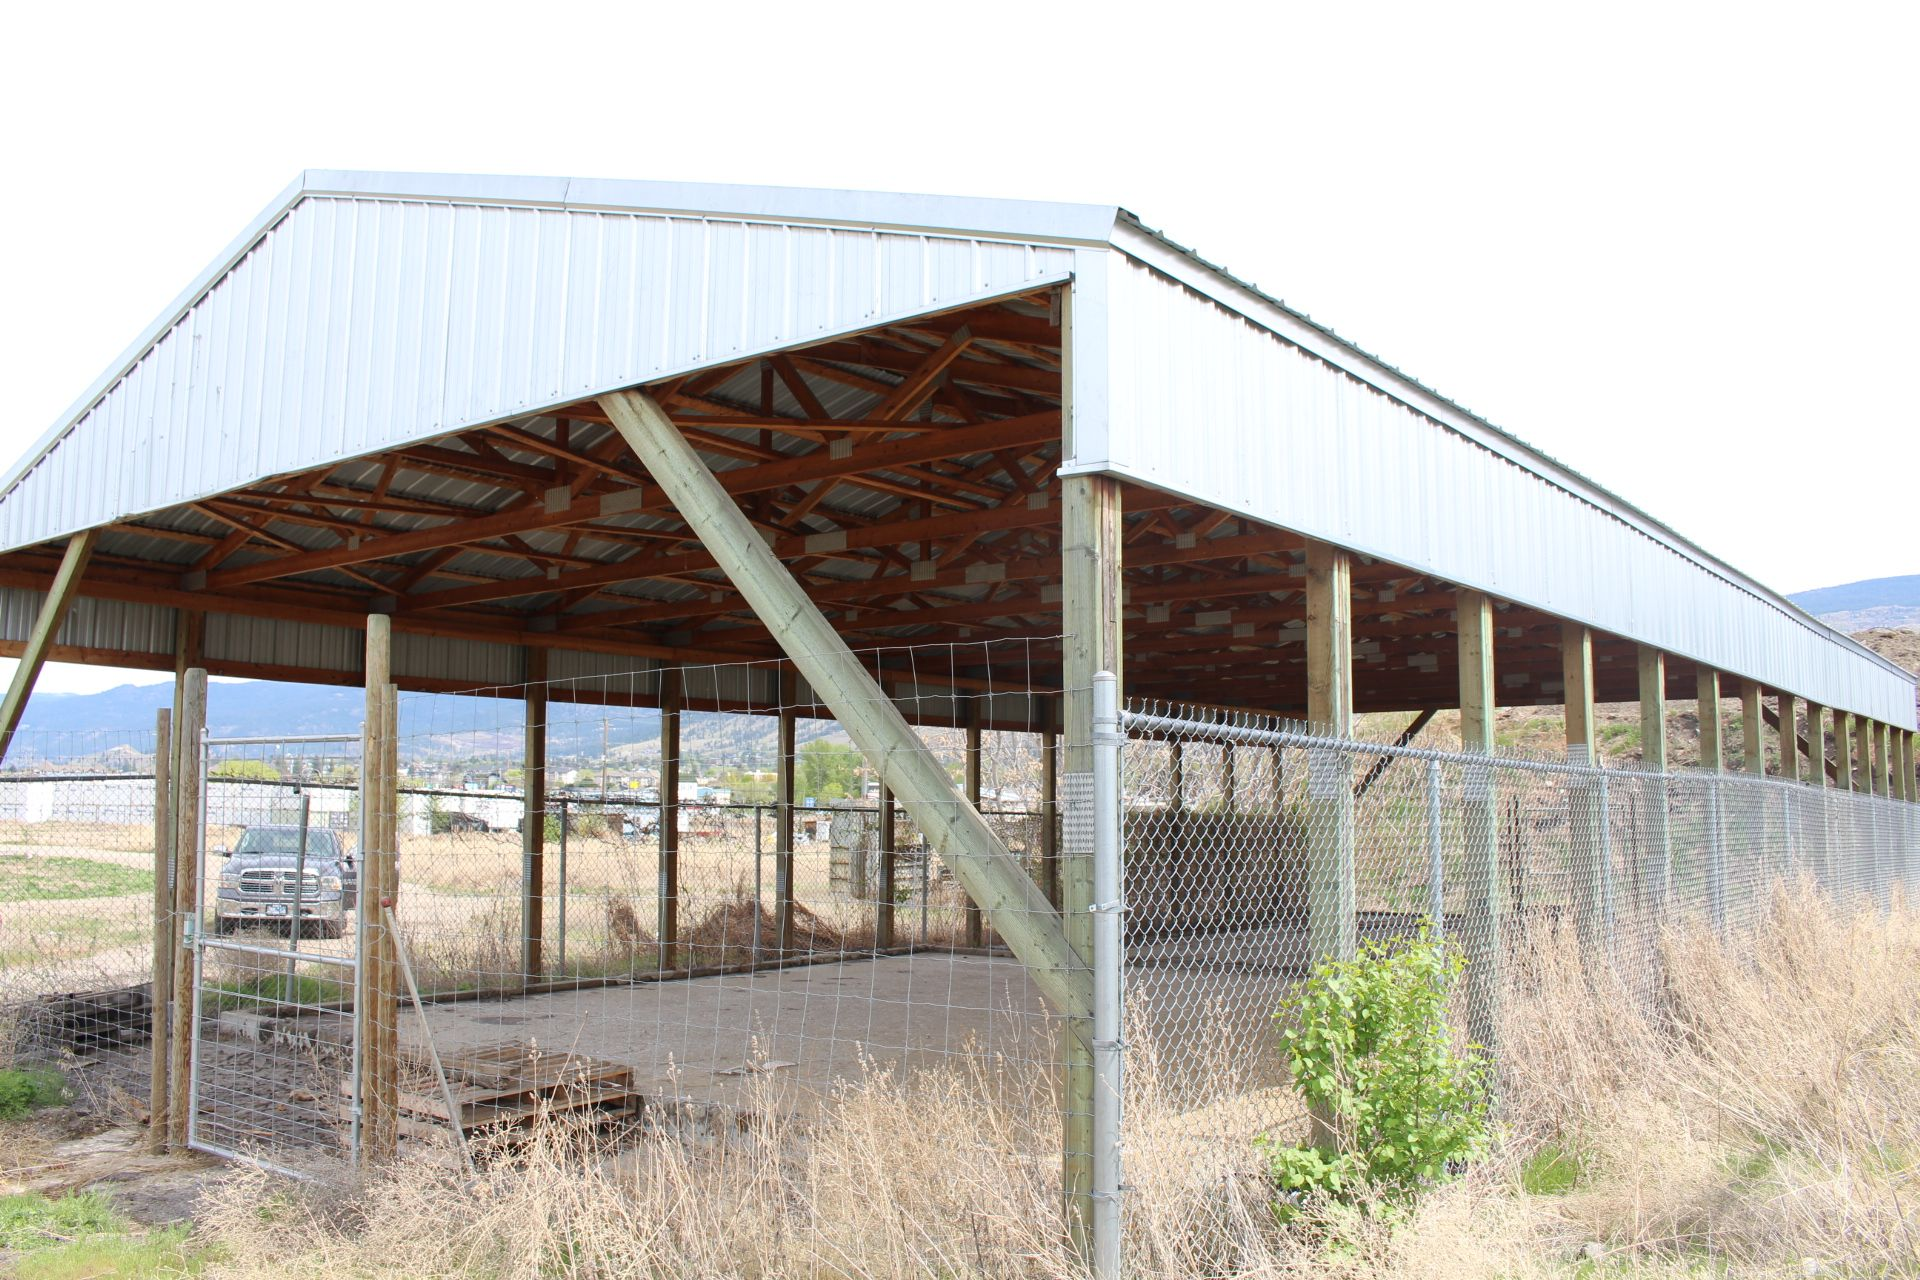 POLE BUILDING, 33' X 80' WOOD TRUSS, METAL CLAD ROOF - Image 3 of 3